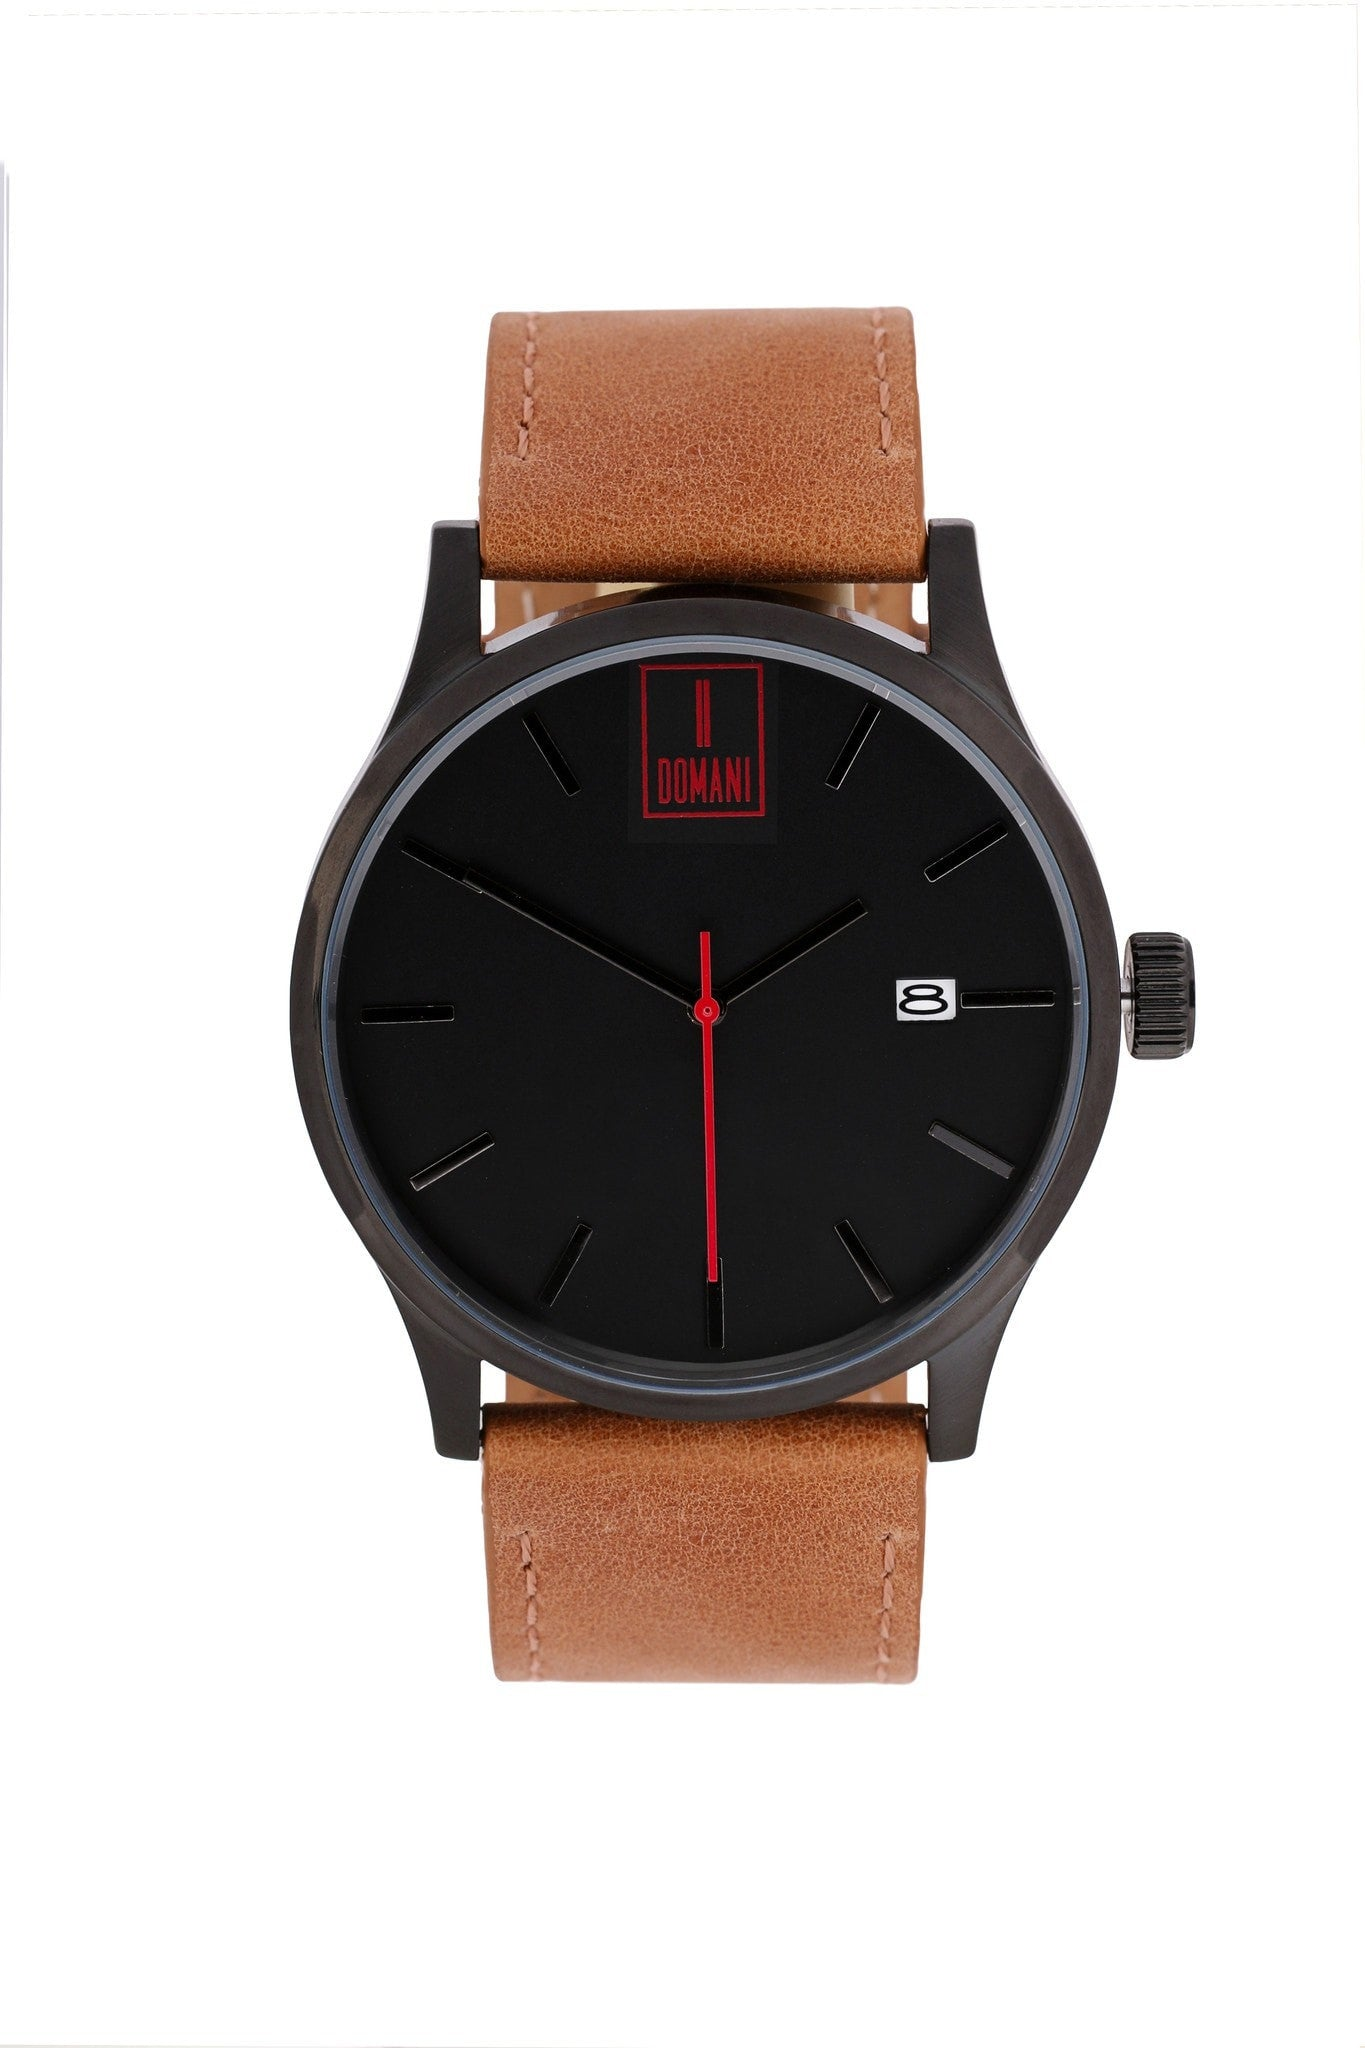 hero introducing merci ixlib unbreakable rails lmm watches paris articles the